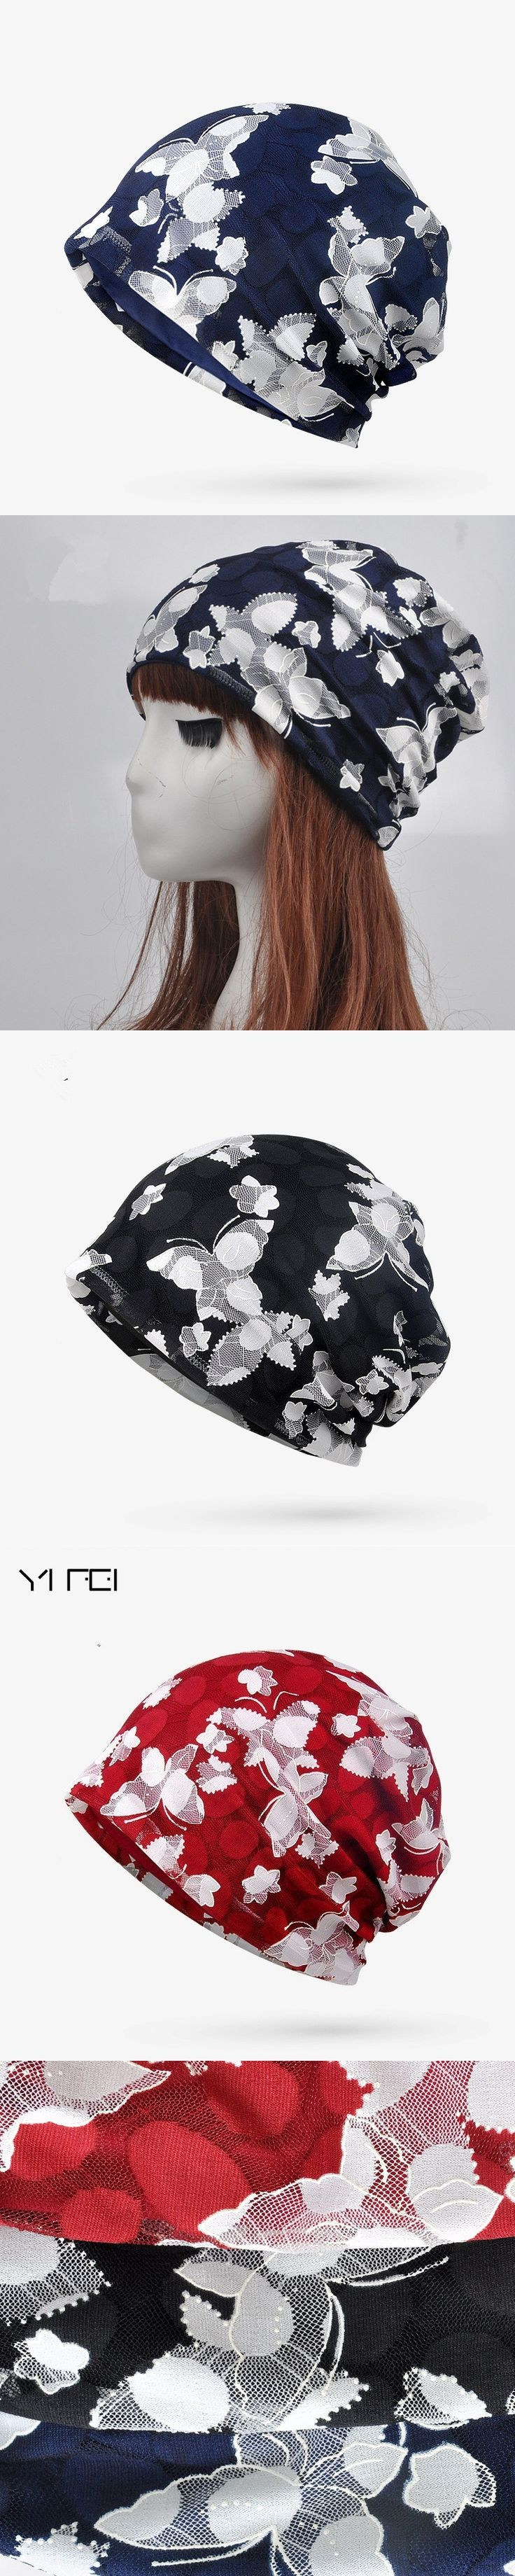 YIFEI Brand New Women's Summer Autumn Hat 2017 Fashion Butterfly Beanie Lady Turban Cap Printing Flower Caps Gorros Scarf